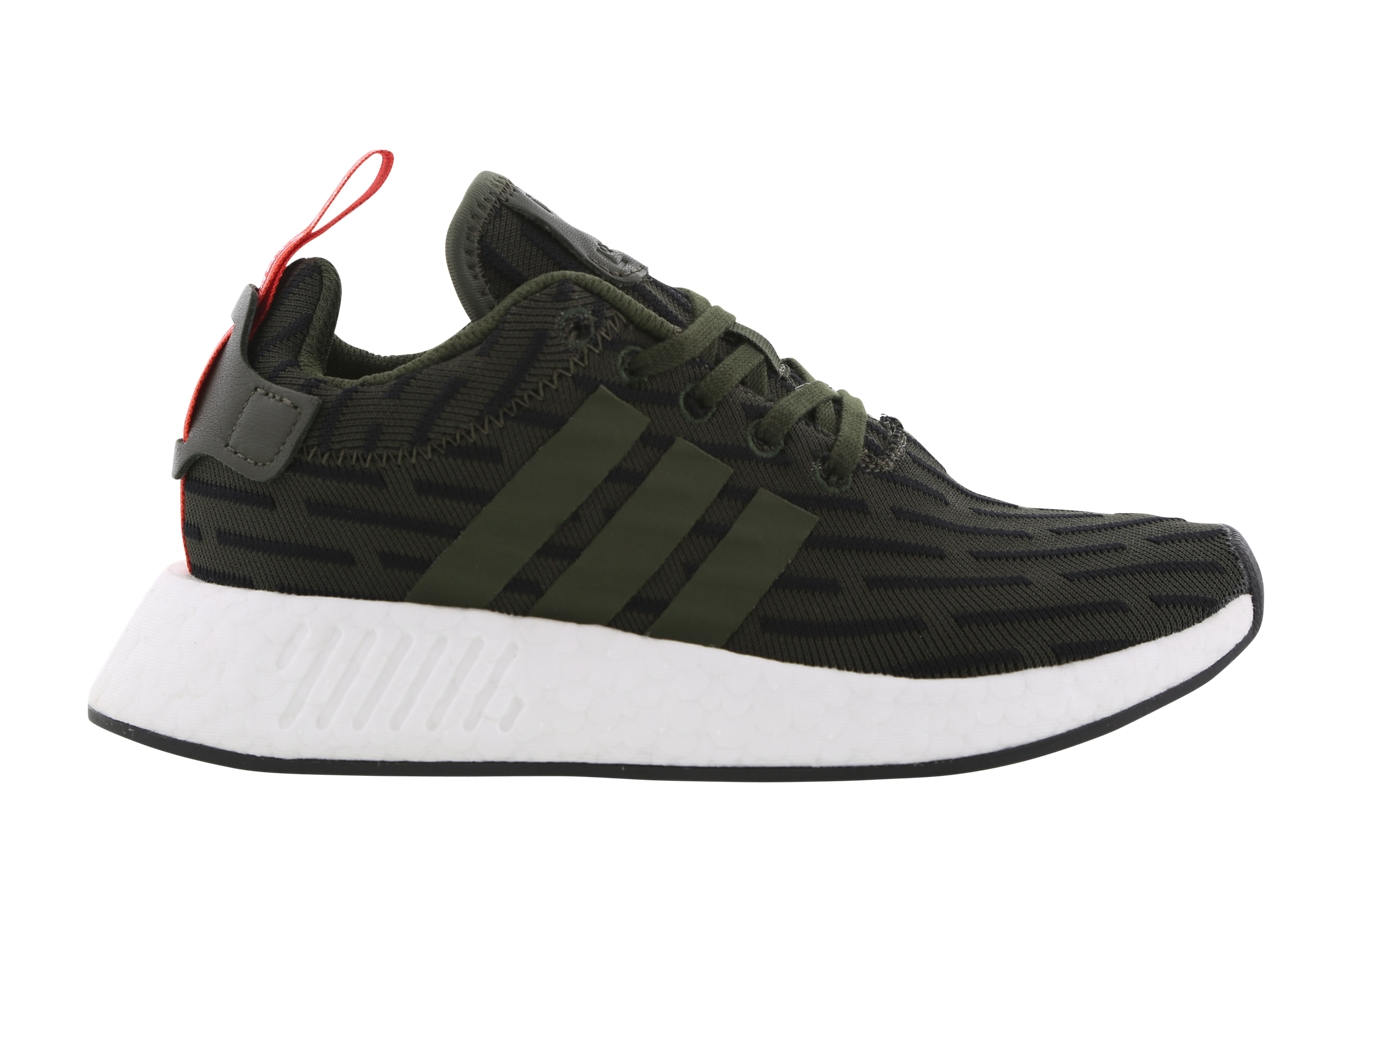 Mens ADIDAS NMD R2 Dark Green Running Trainers BY2500